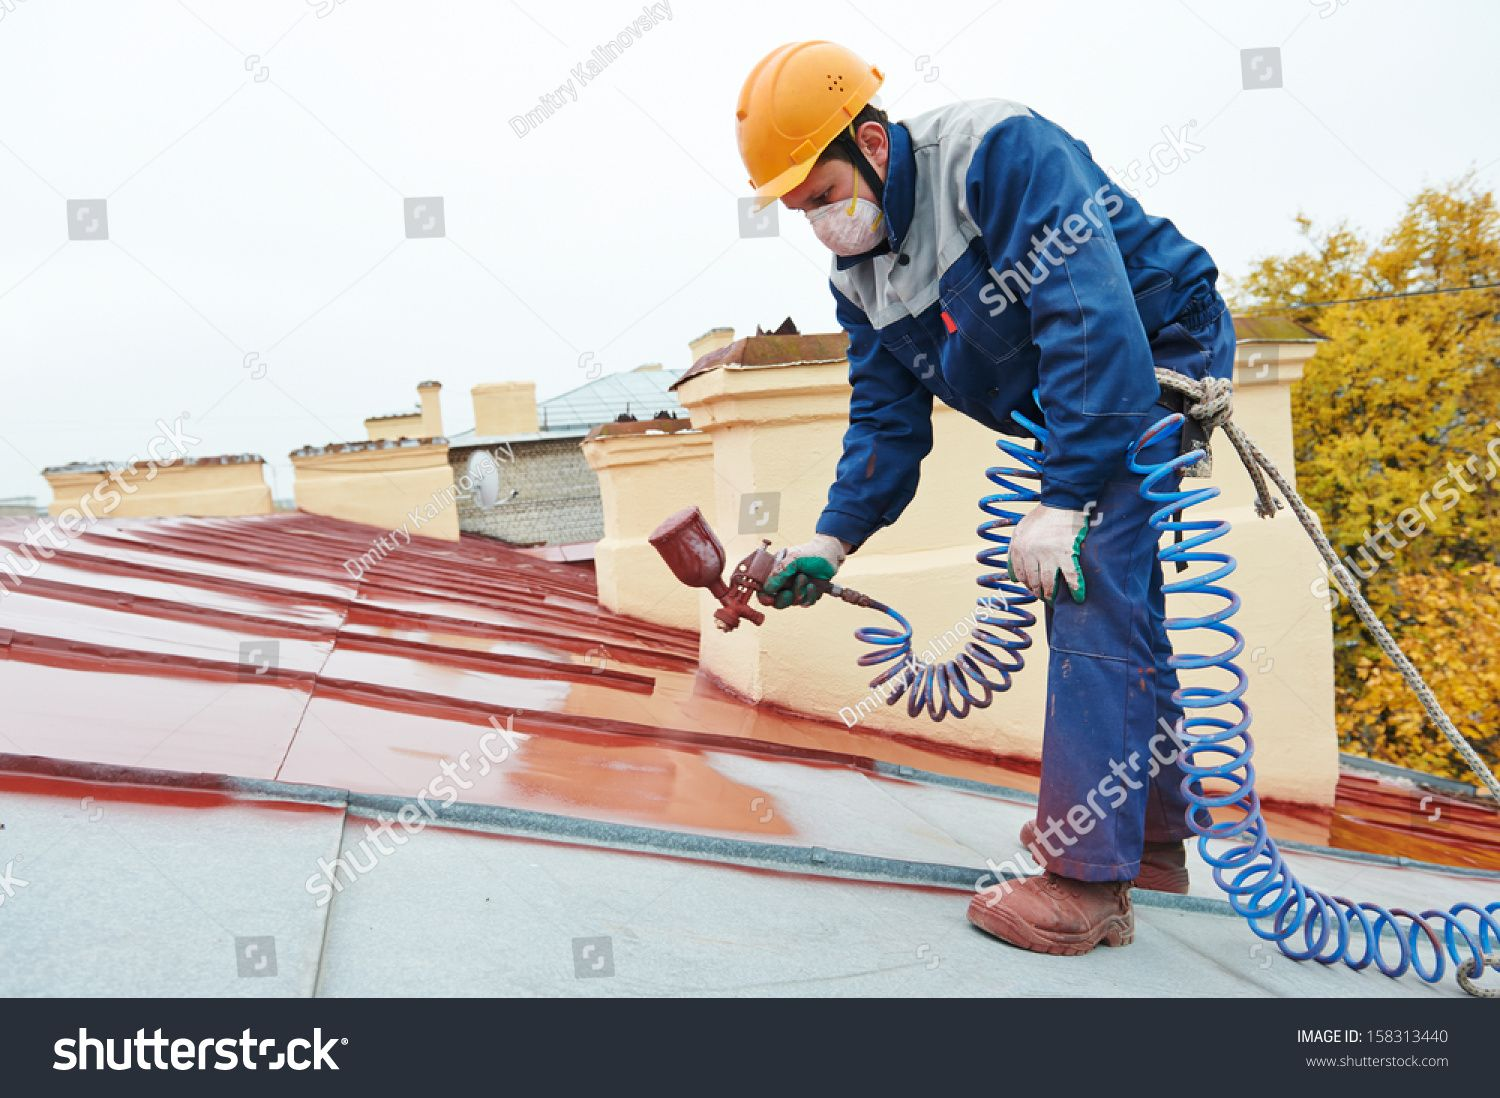 Roofer Builder Worker With Pulverizer Spraying Paint On Metal Sheet Roof Royalty Free Image Photo In 2020 Metal Roof Roof Installation Roofer